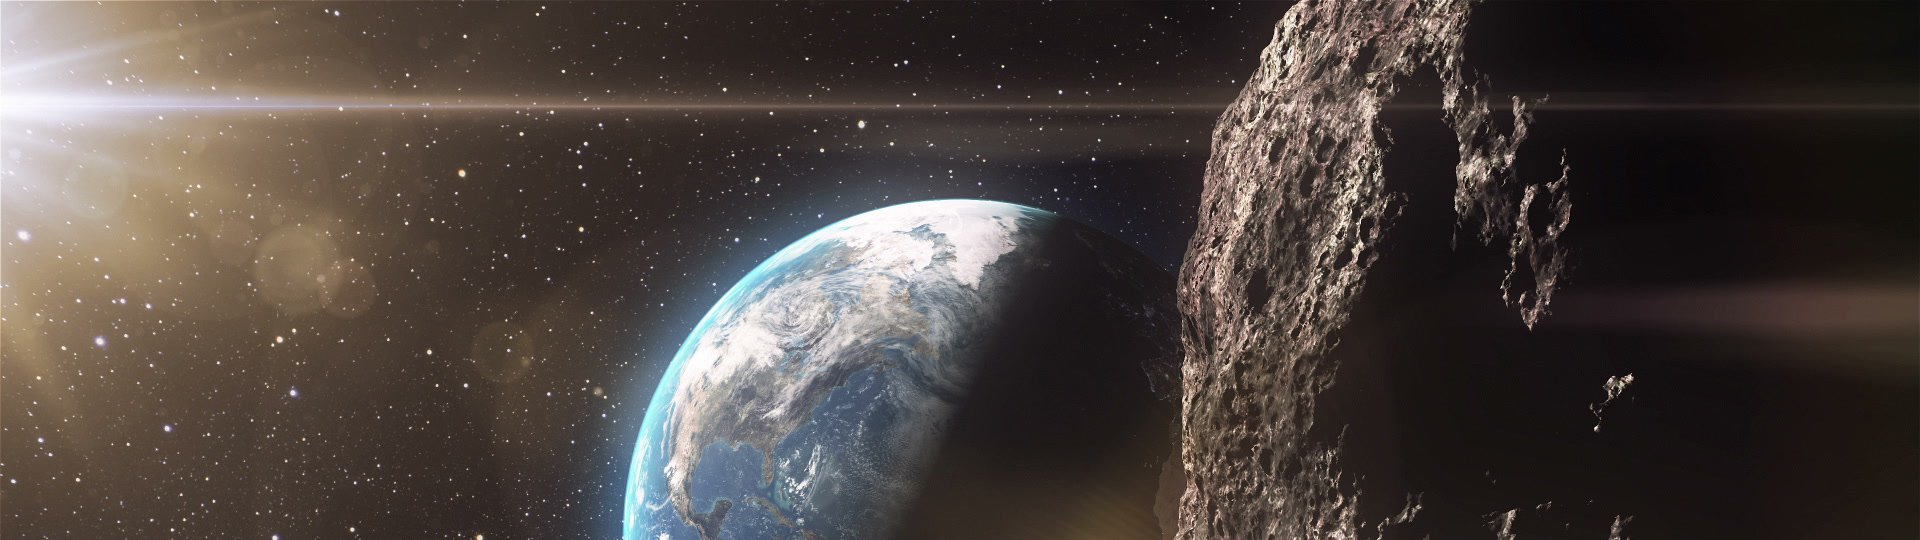 Asteroid | Huge asteroid approaching to the Earth - ID:22137